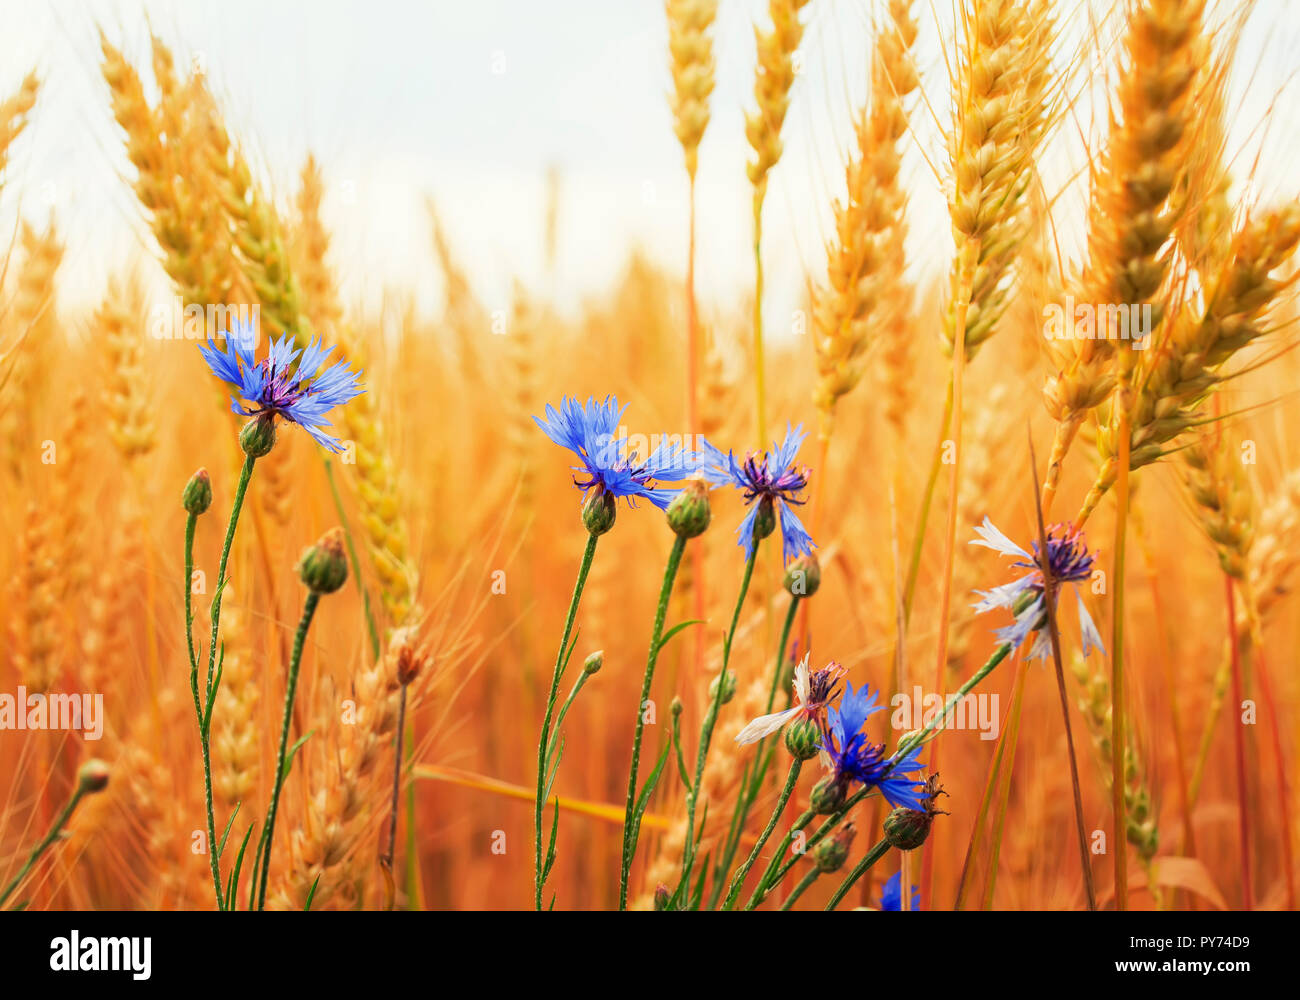 nature background with blue cornflowers wild flowers growing on a field with ripe Golden ears of corn, and the grains of wheat on a Sunny day - Stock Image